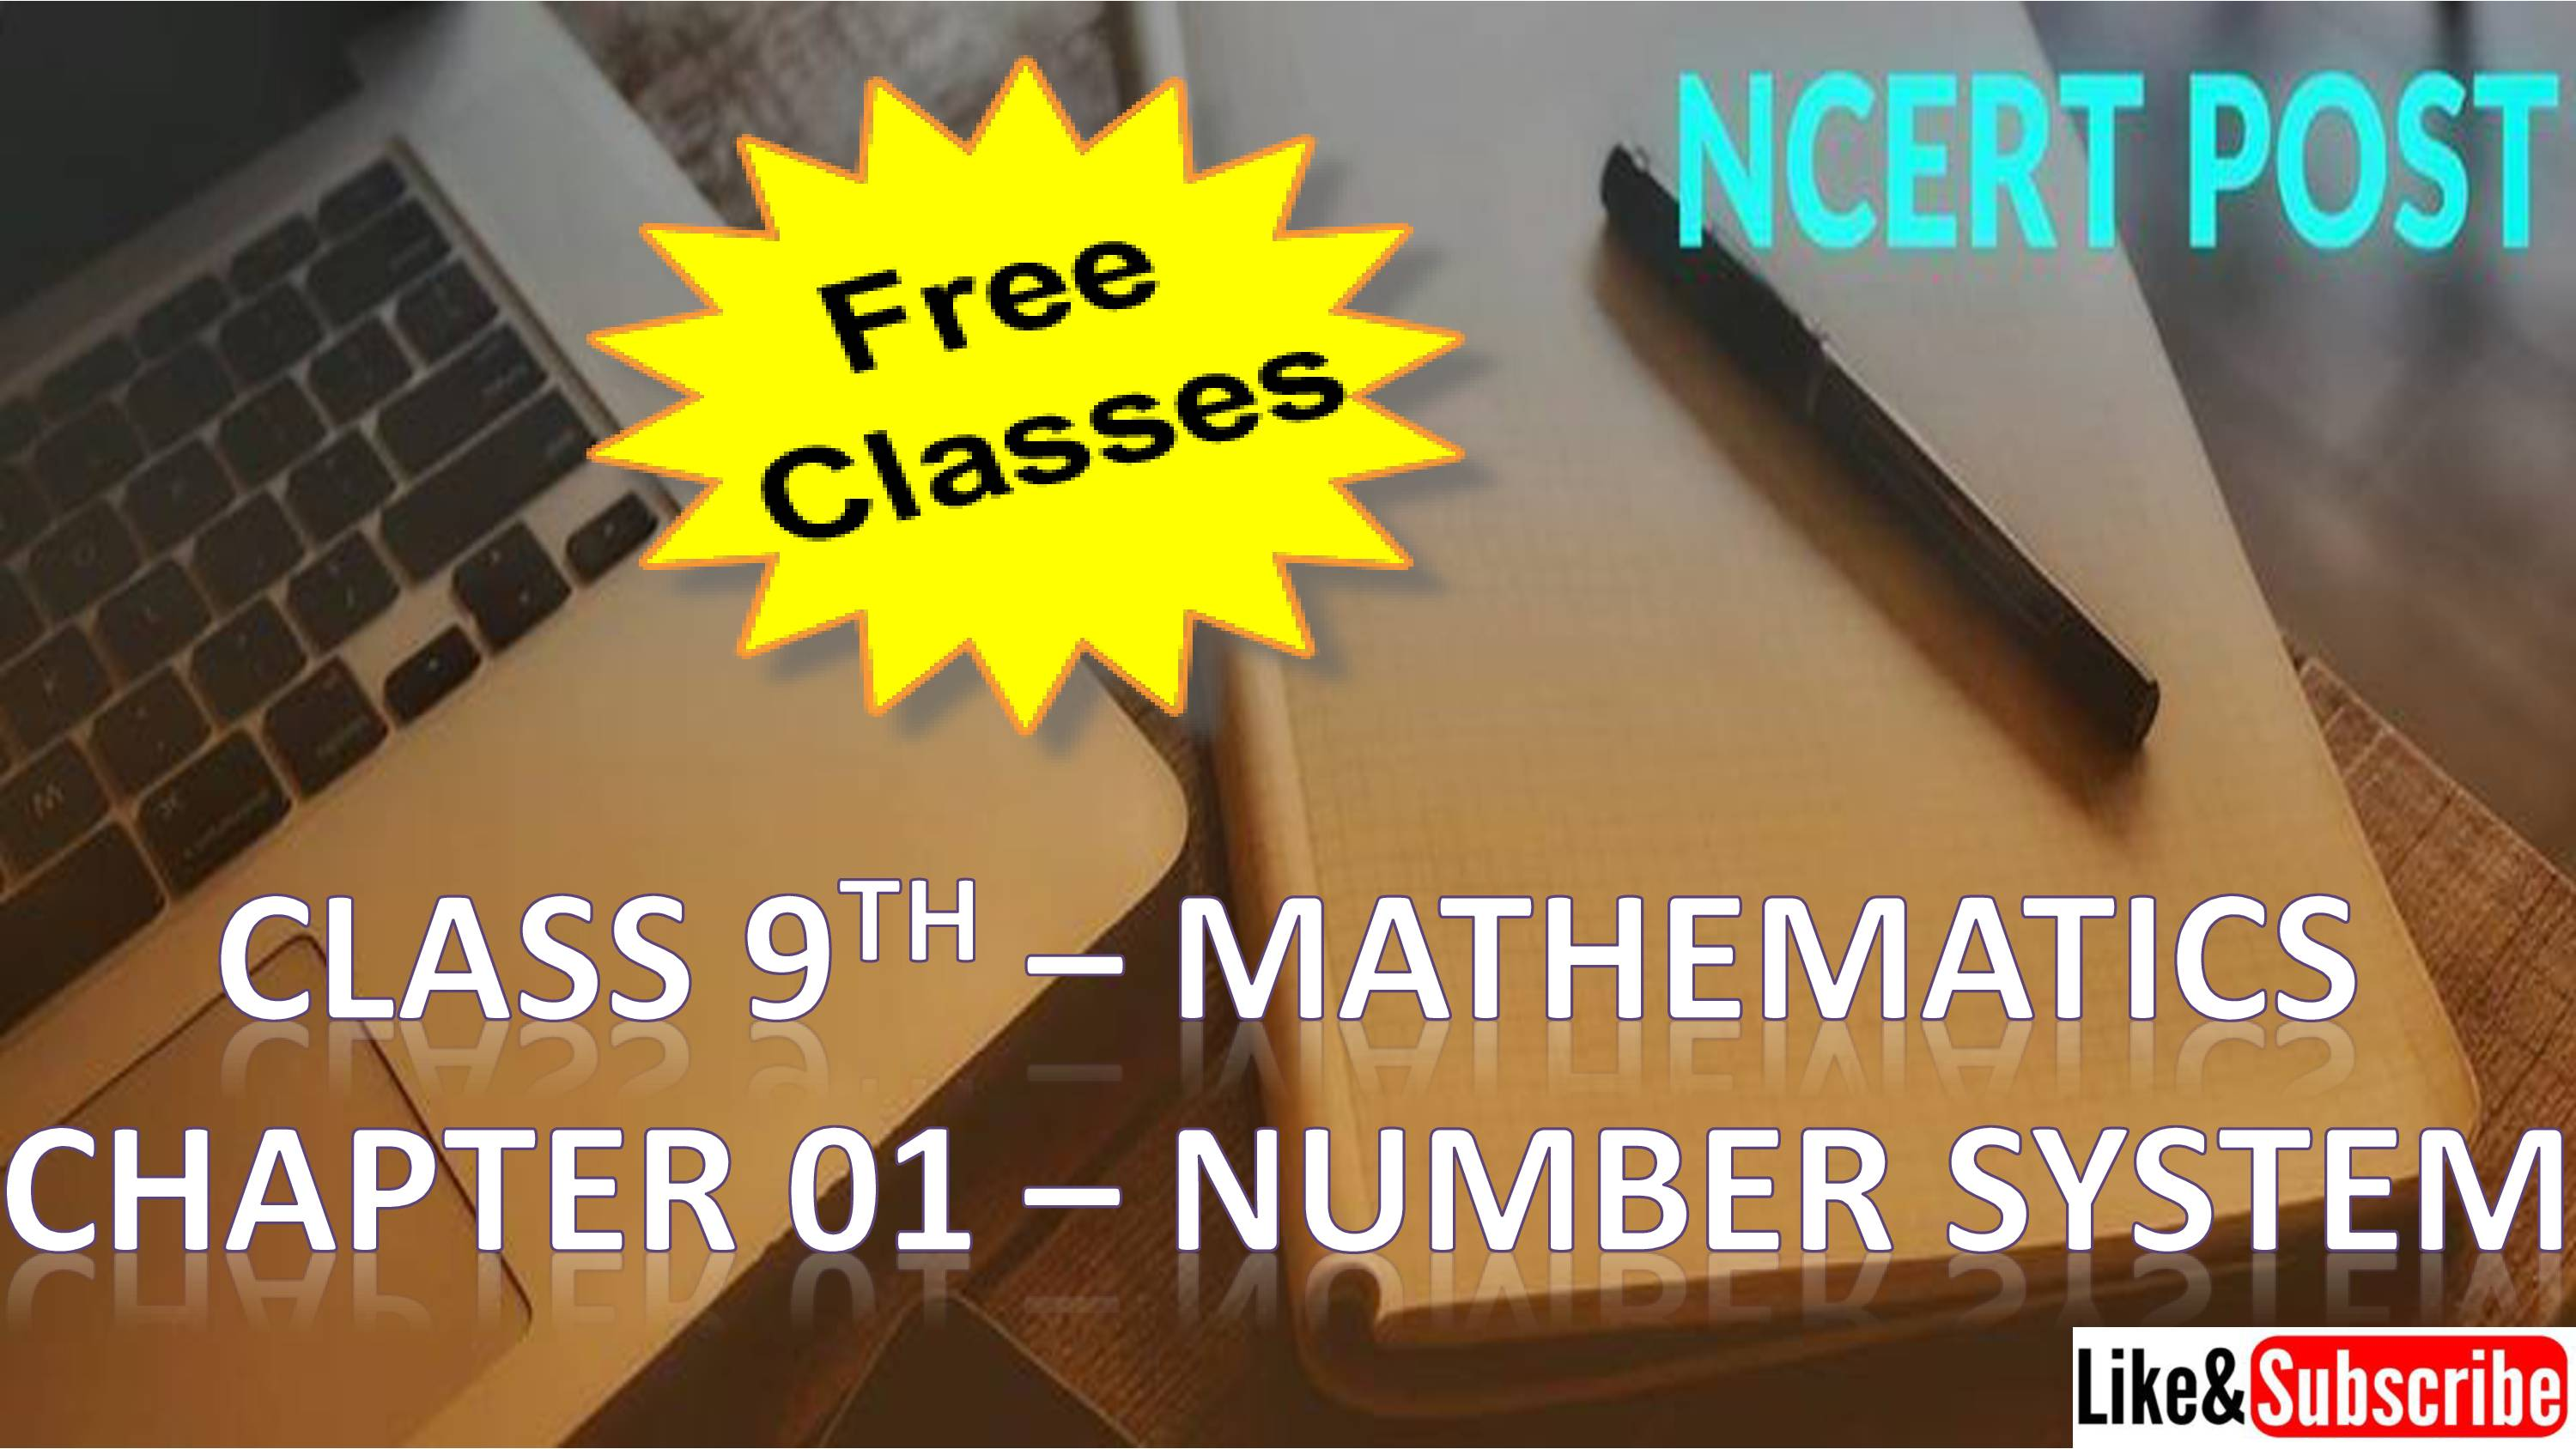 PPT on Number System - Class 9th Mathematics CBSE